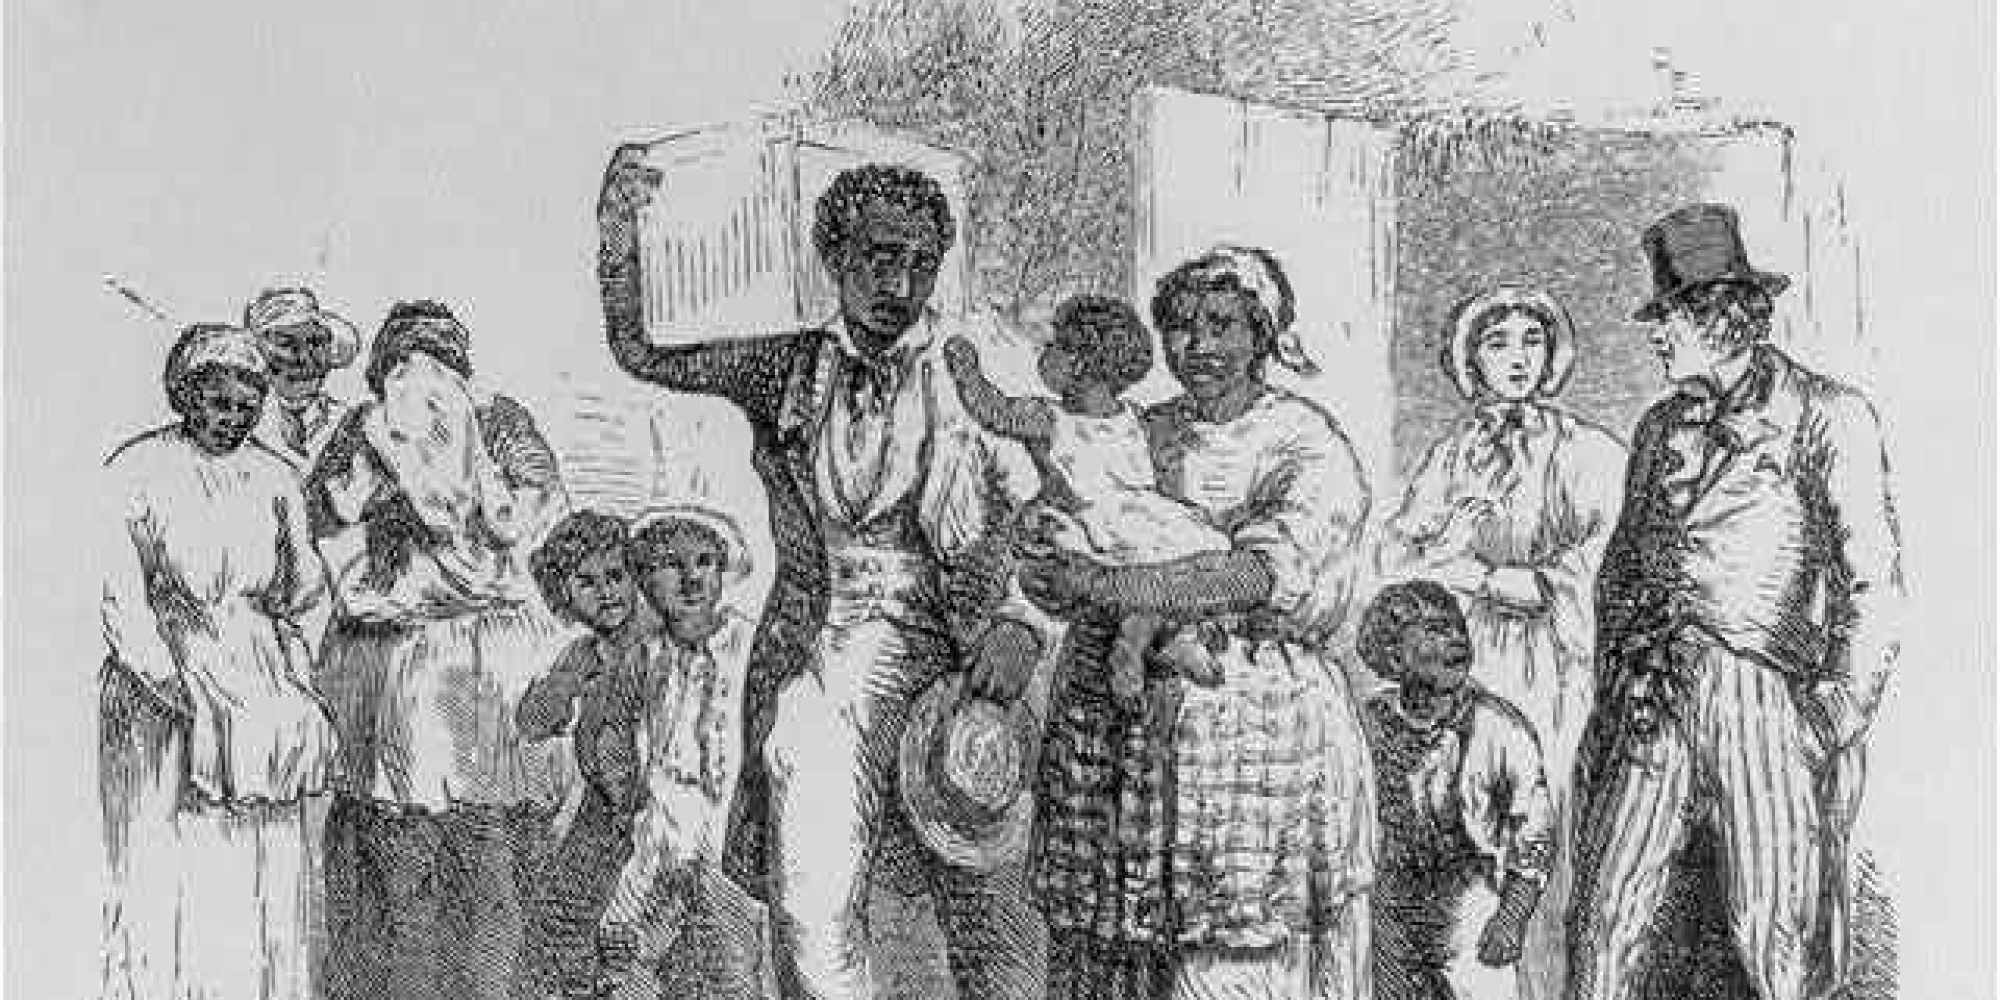 a study of the slave culture in america African american research the archives holds a wealth of material documenting the african american experience, and highlights these resources online, in programs, and through traditional and social media.